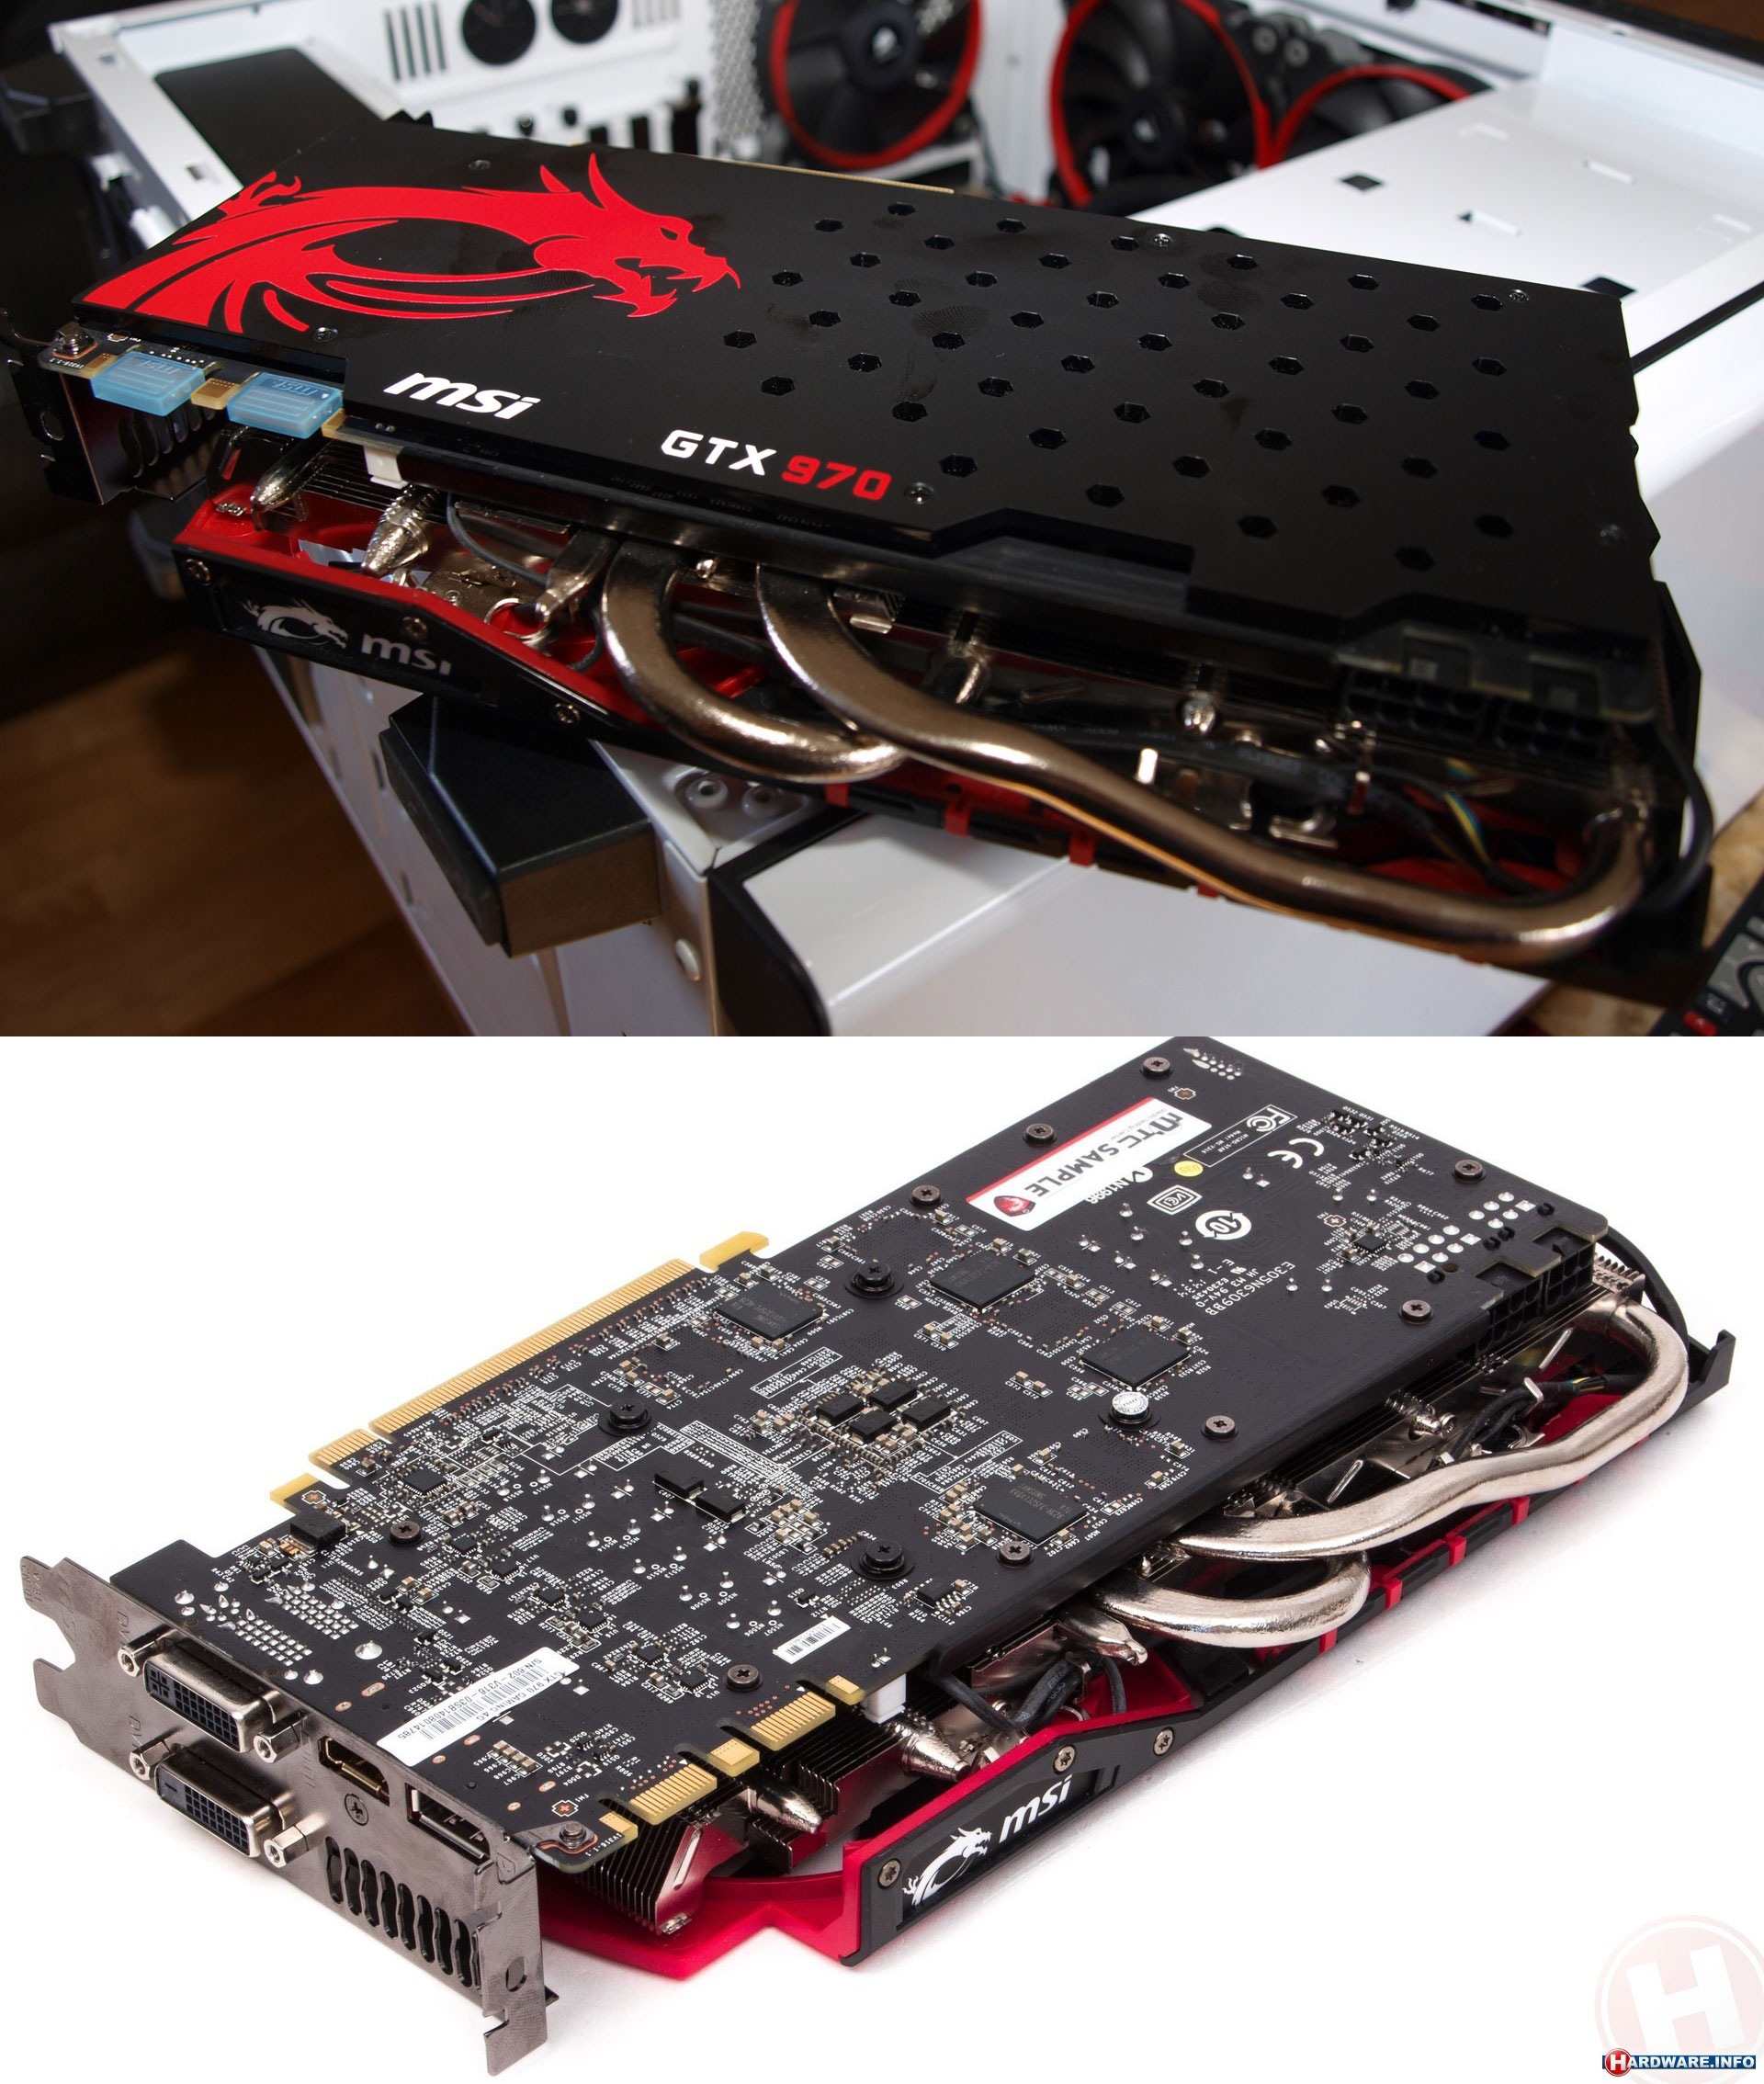 msi-geforce-gtx-970-gaming-4gb-Compate-.jpg